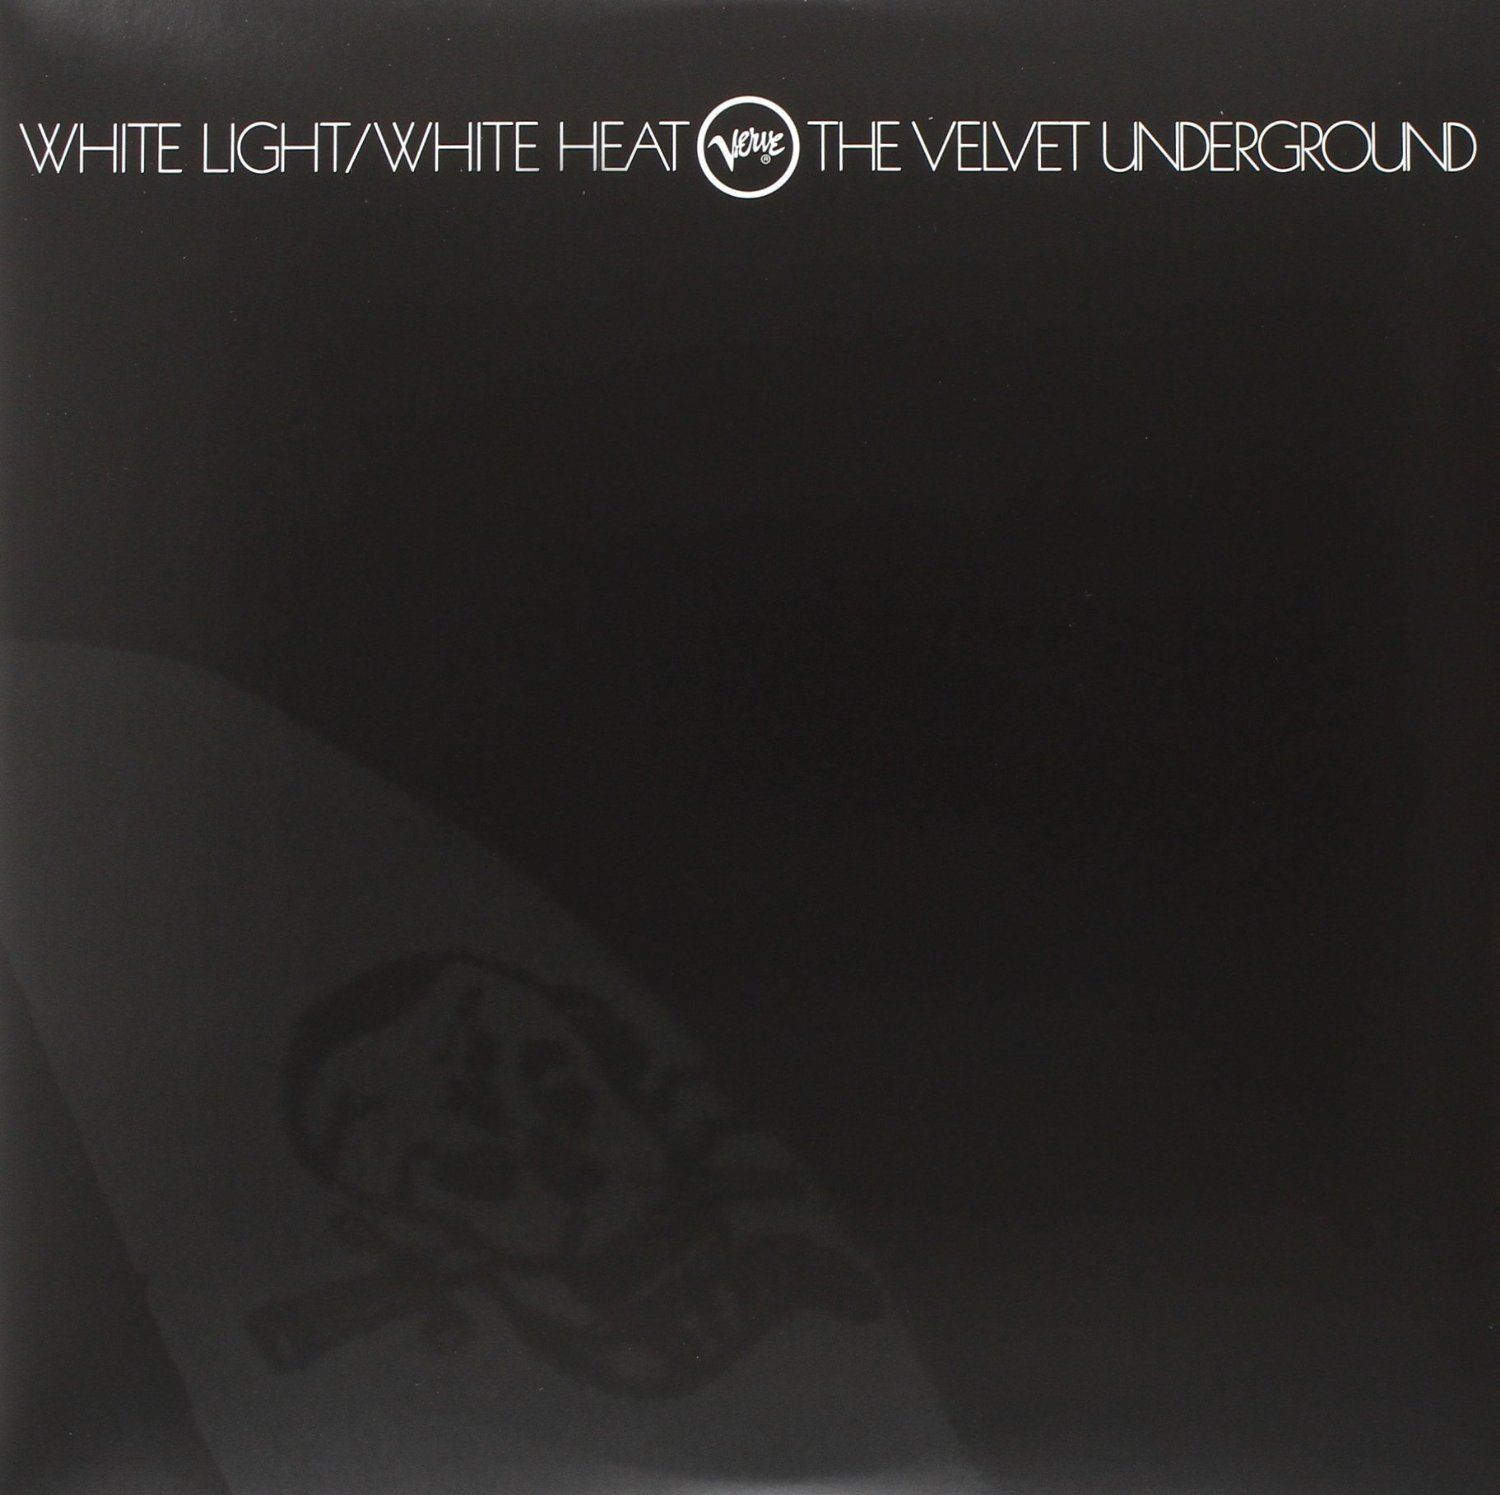 Toxic Toast The Velvet Underground White Light White